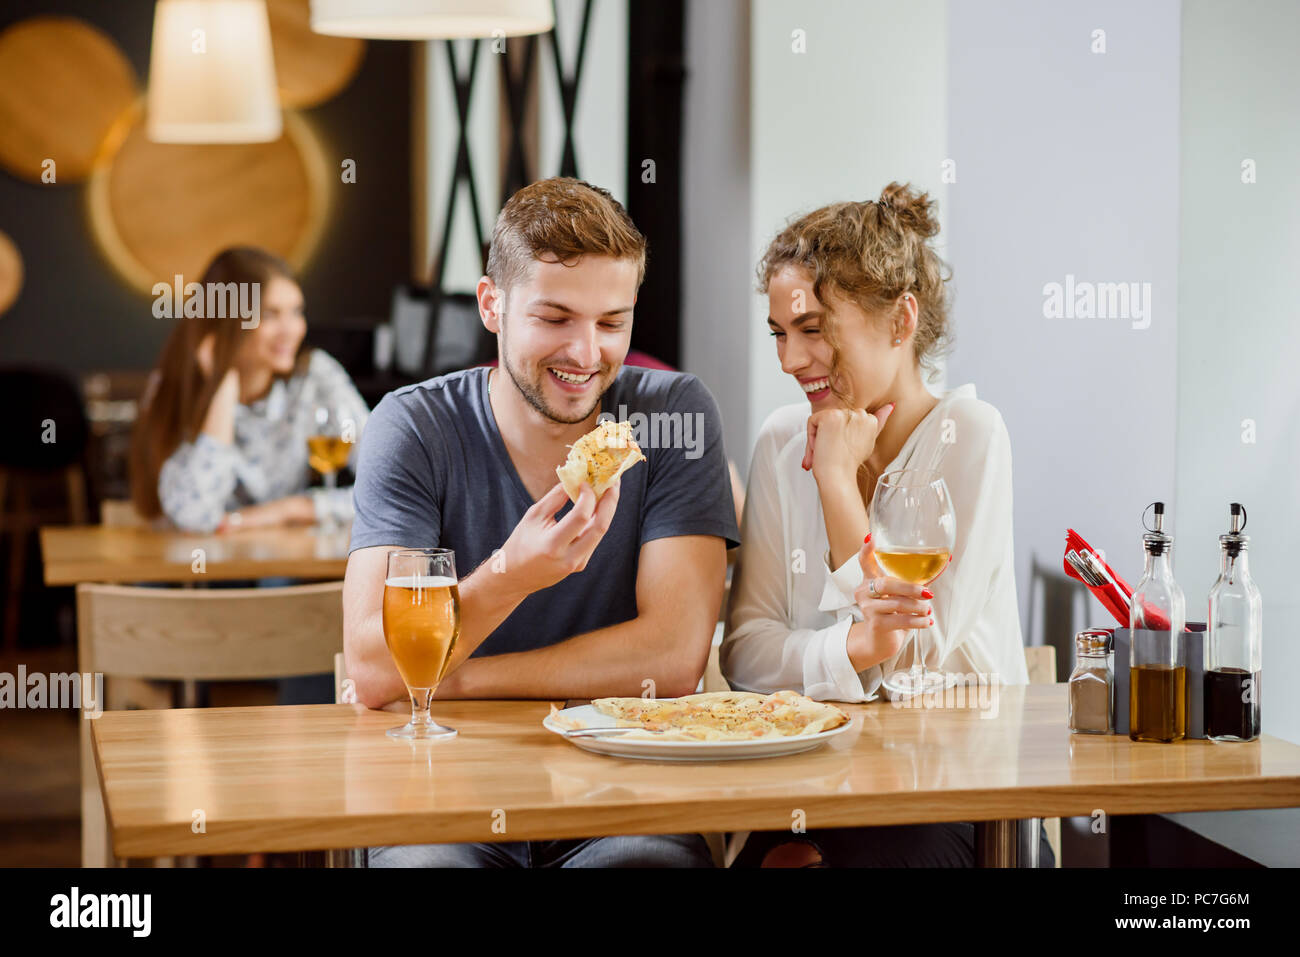 Interior of modern pizzeria. Sweet couple sitting near table, smiling and posing. Beautiful woman with curly hair and handsome man eating pizza. Pizza and glasses of wine and beer on table. - Stock Image